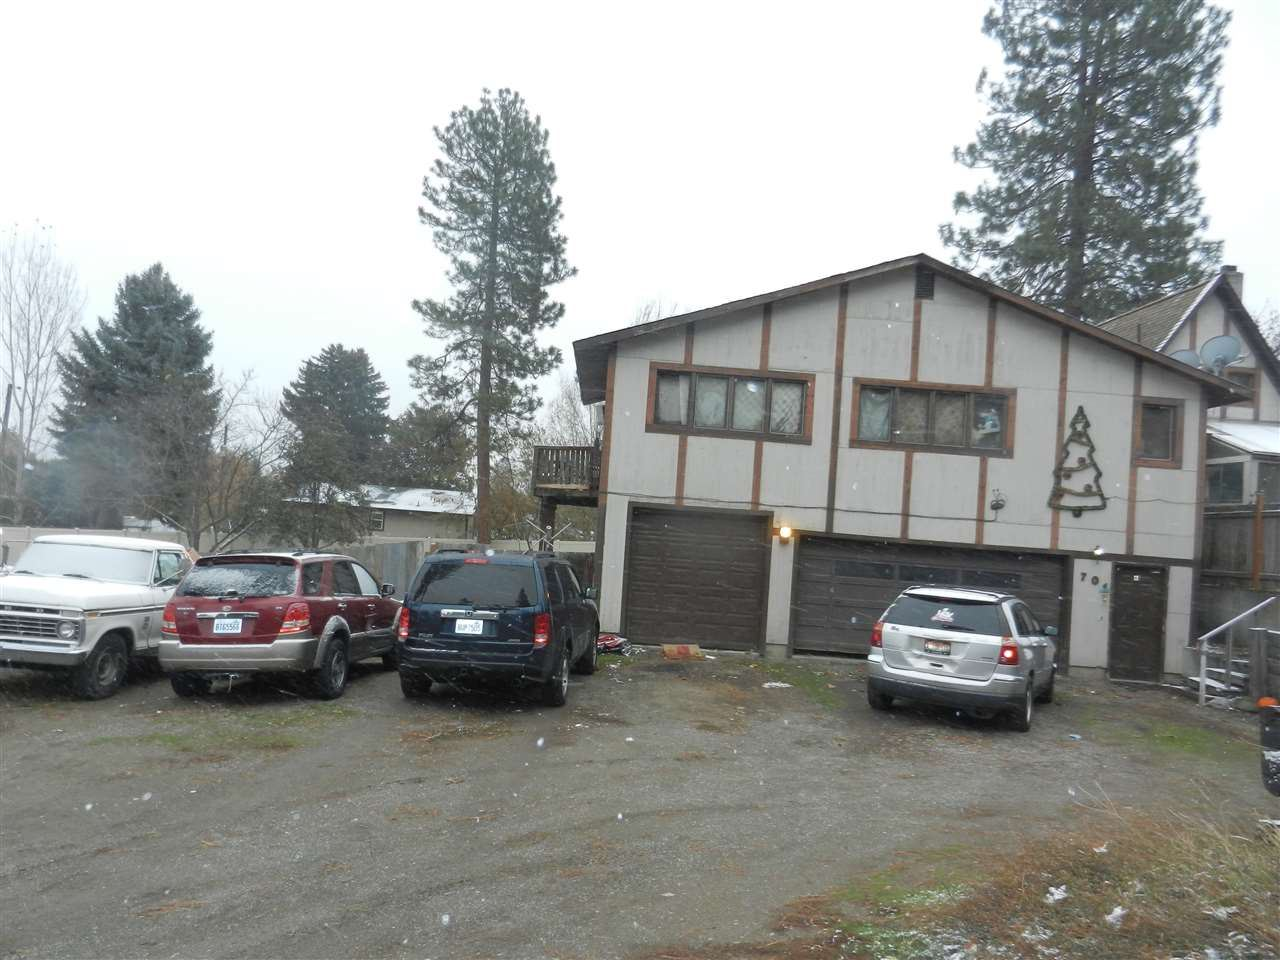 701 S Felts Rd, Spokane Valley, WA 99206 - #: 202024818